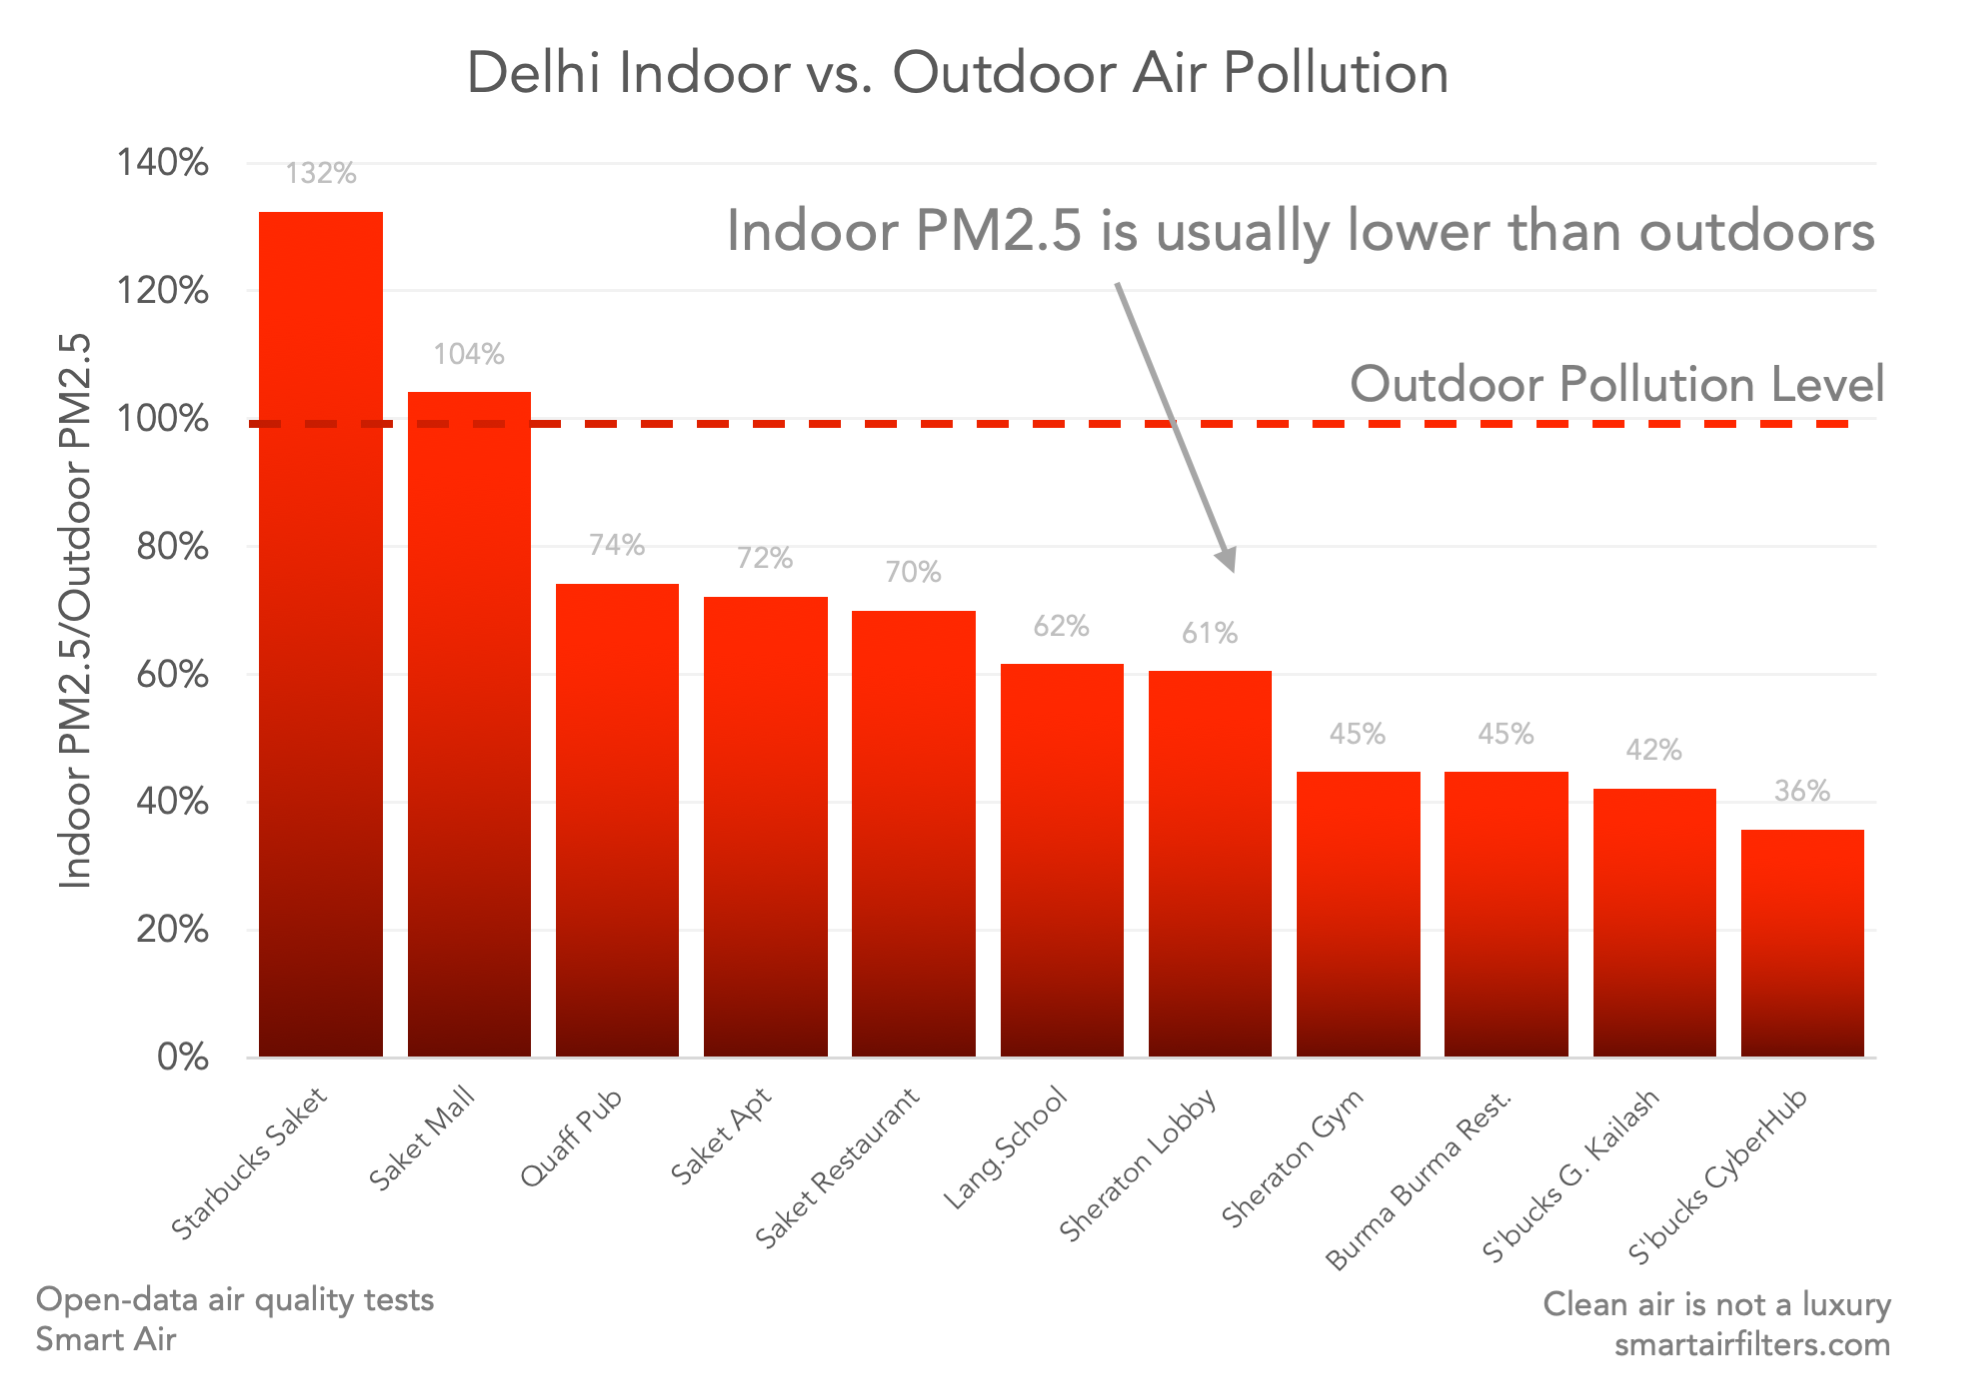 Delhi indoor air vs. outdoor air pollution: indoor PM2.5 is usually lower